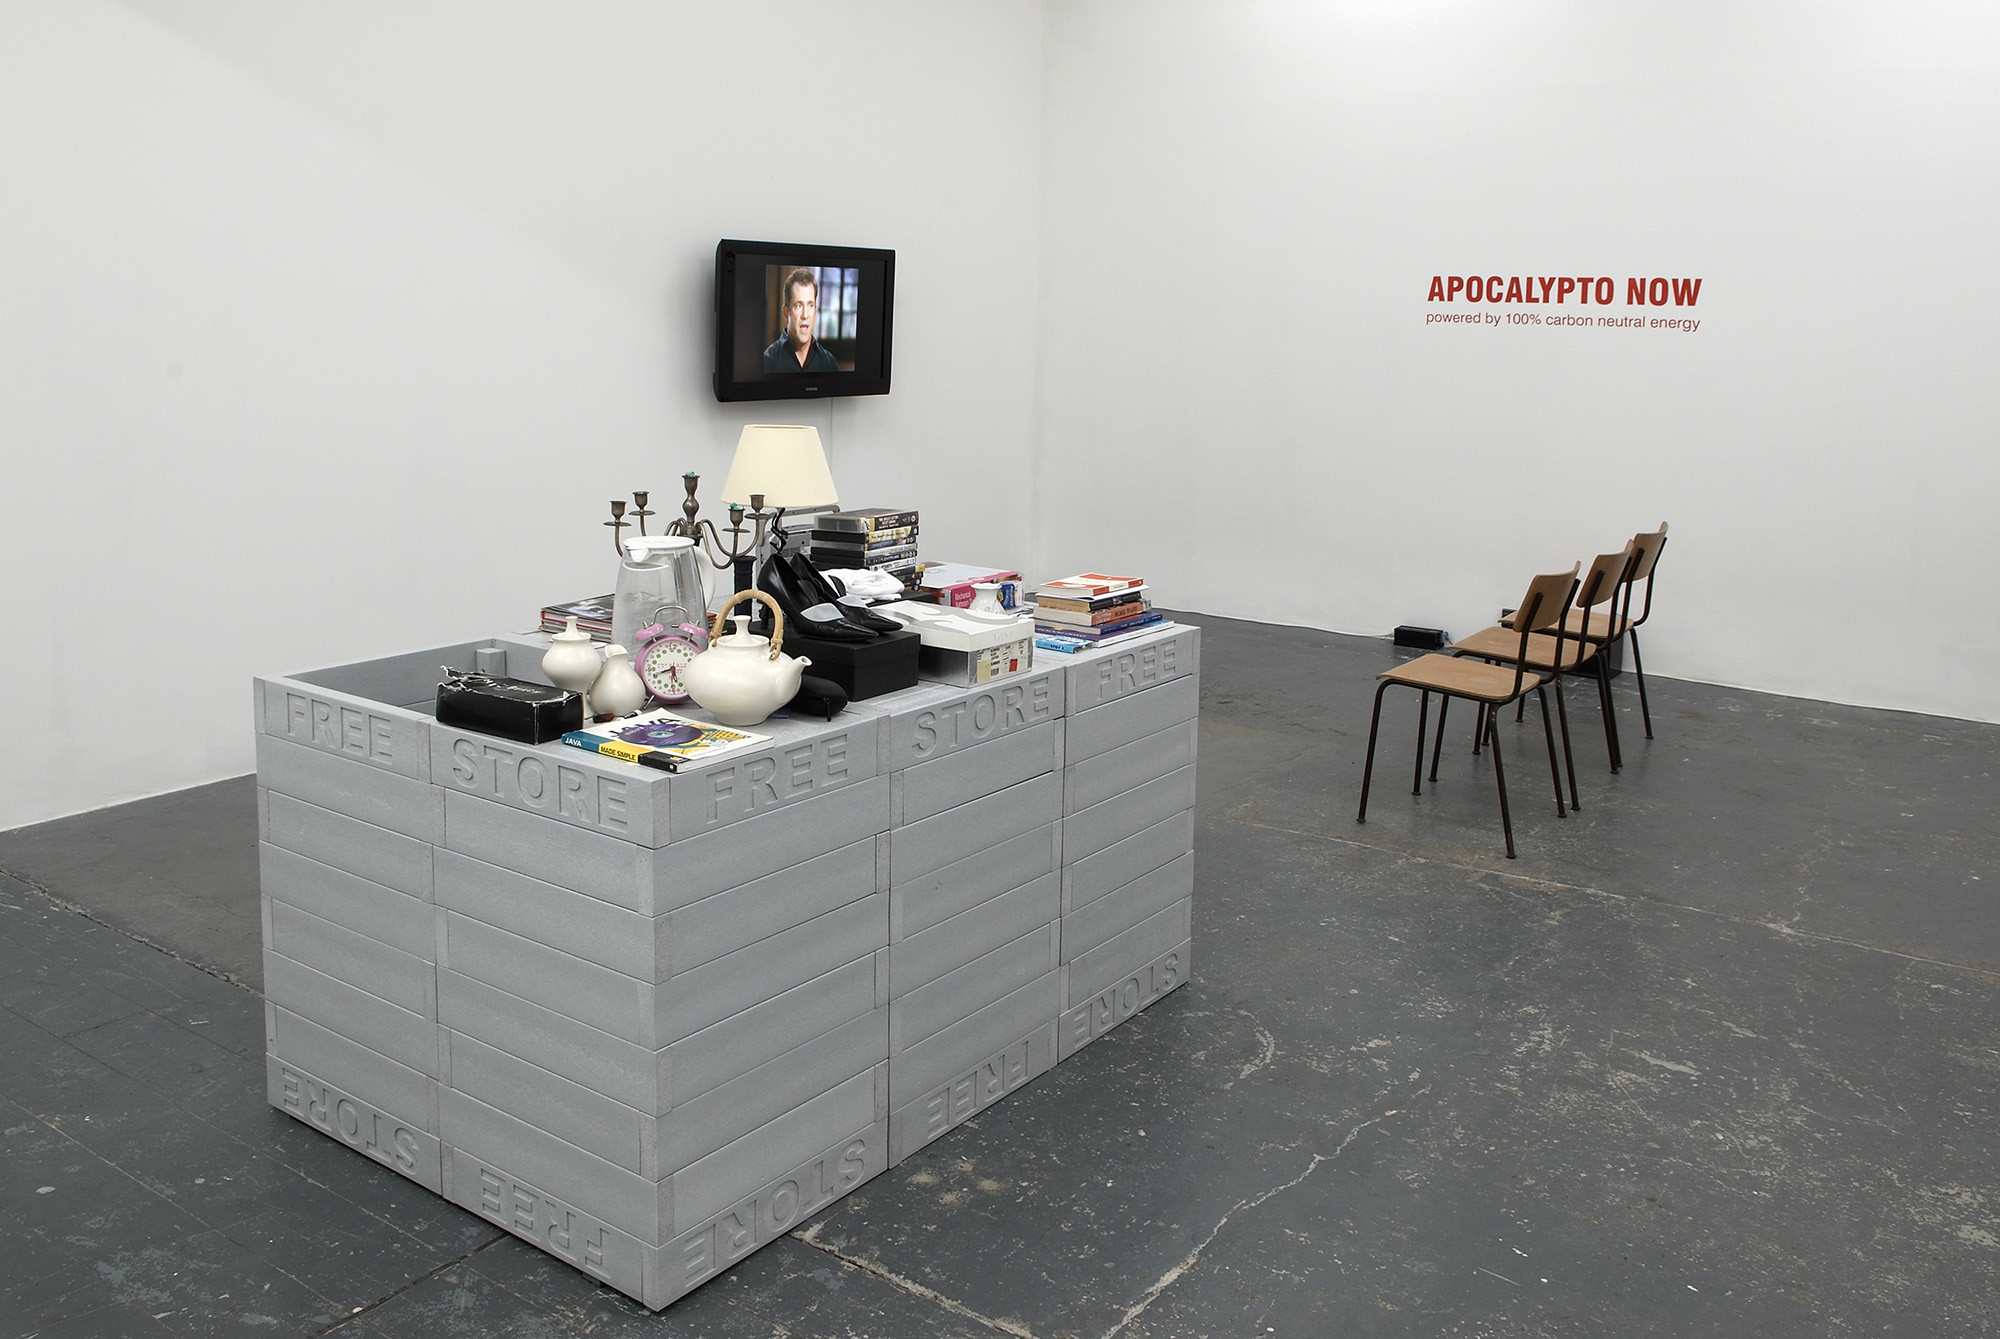 "<div class=""artwork_caption""><p>Installation view, 2009</p></div>"